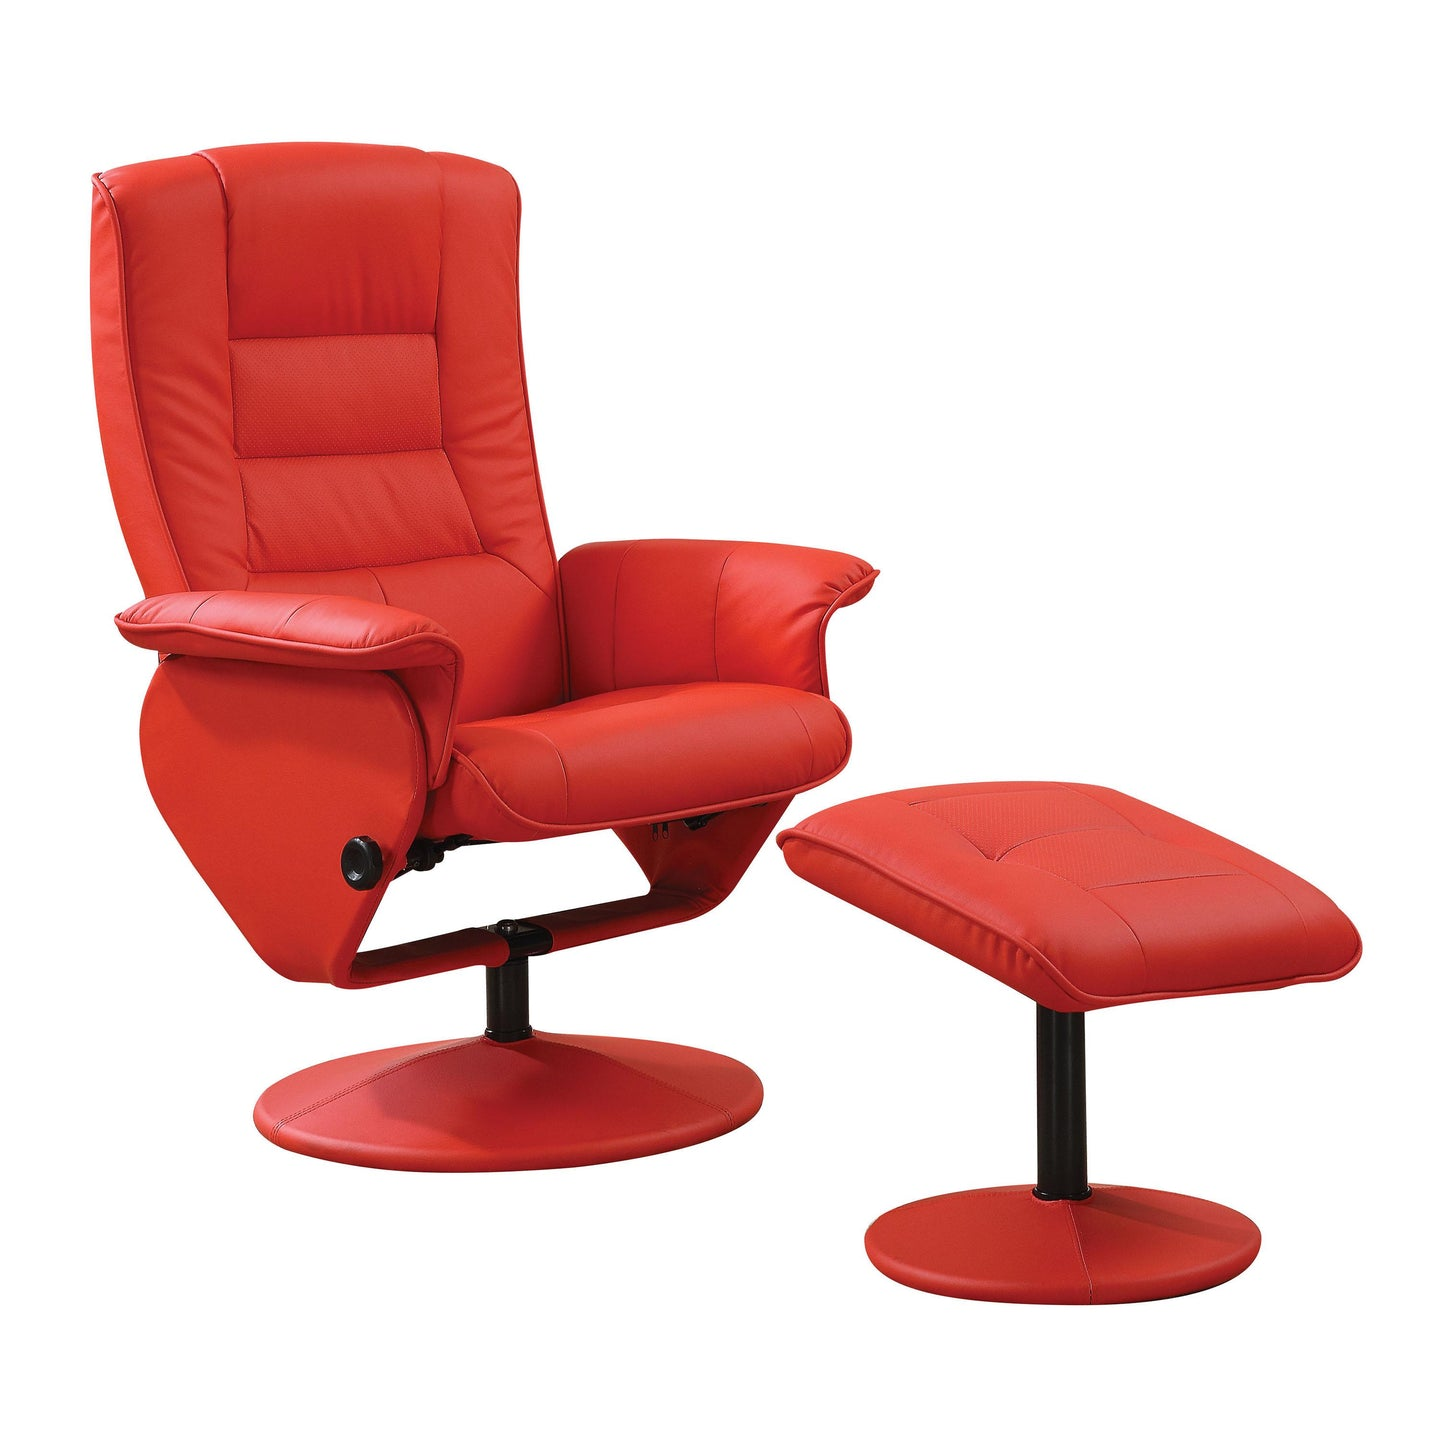 Acme Arche Red PU Pack Recliner Chair and Ottoman